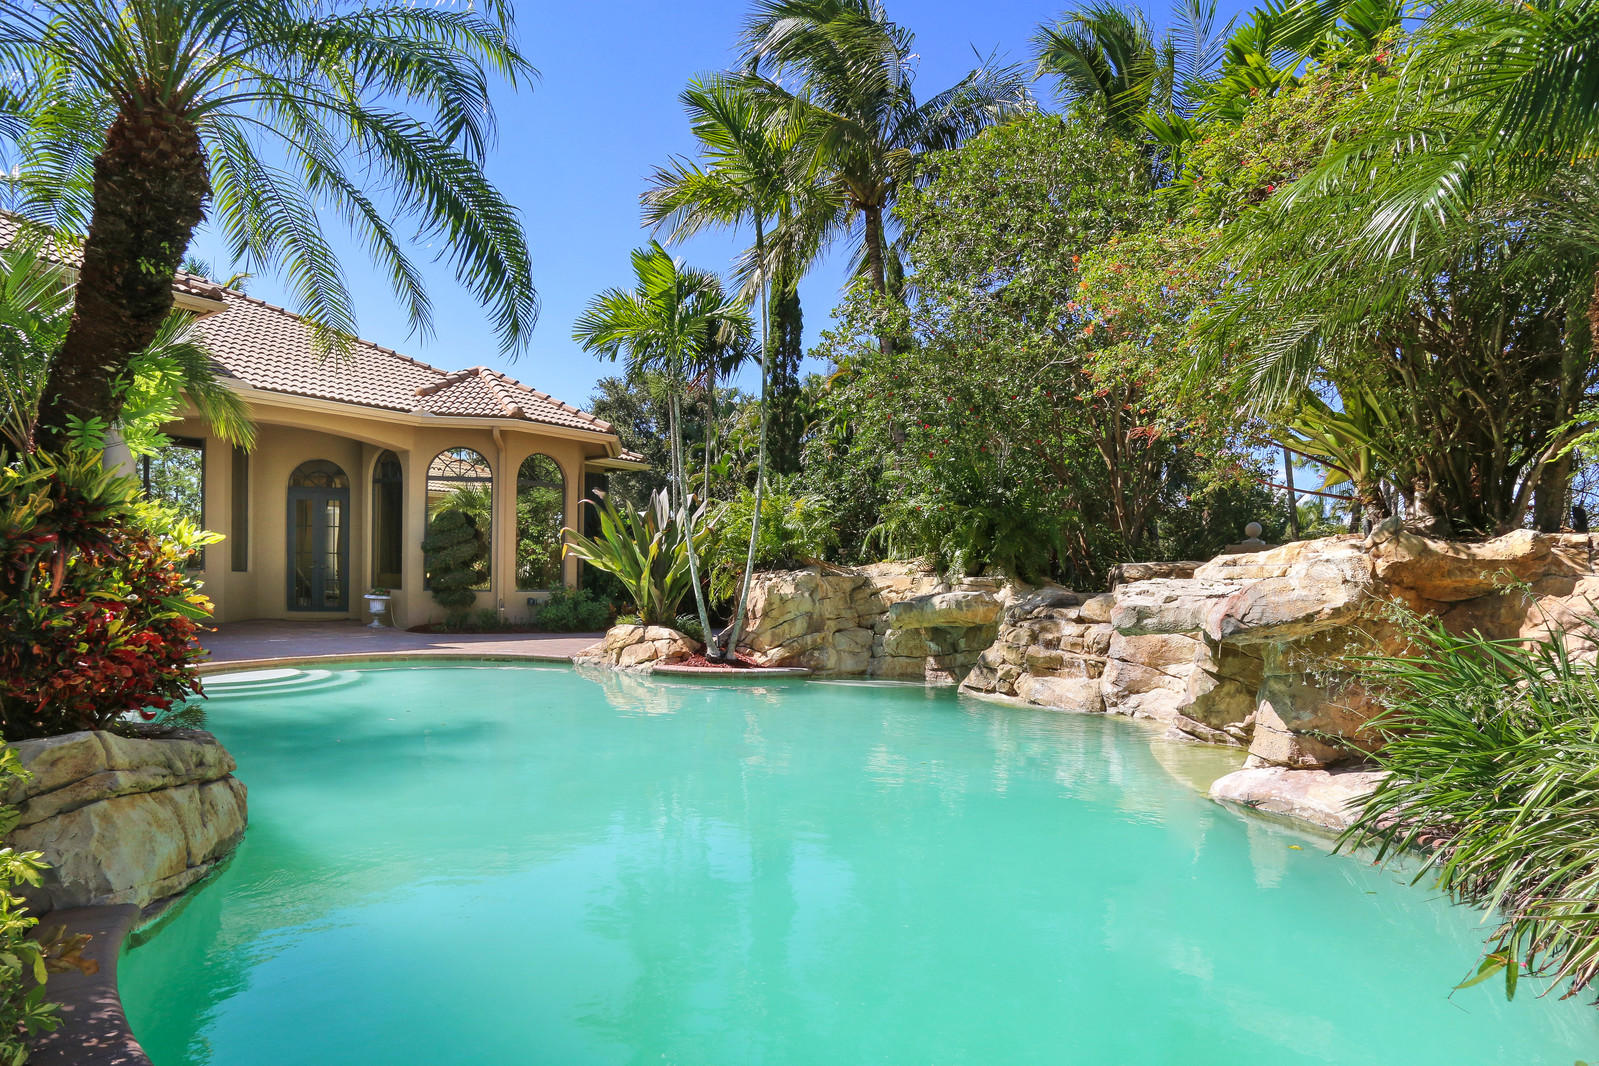 BAY HILL ESTATES PALM BEACH GARDENS